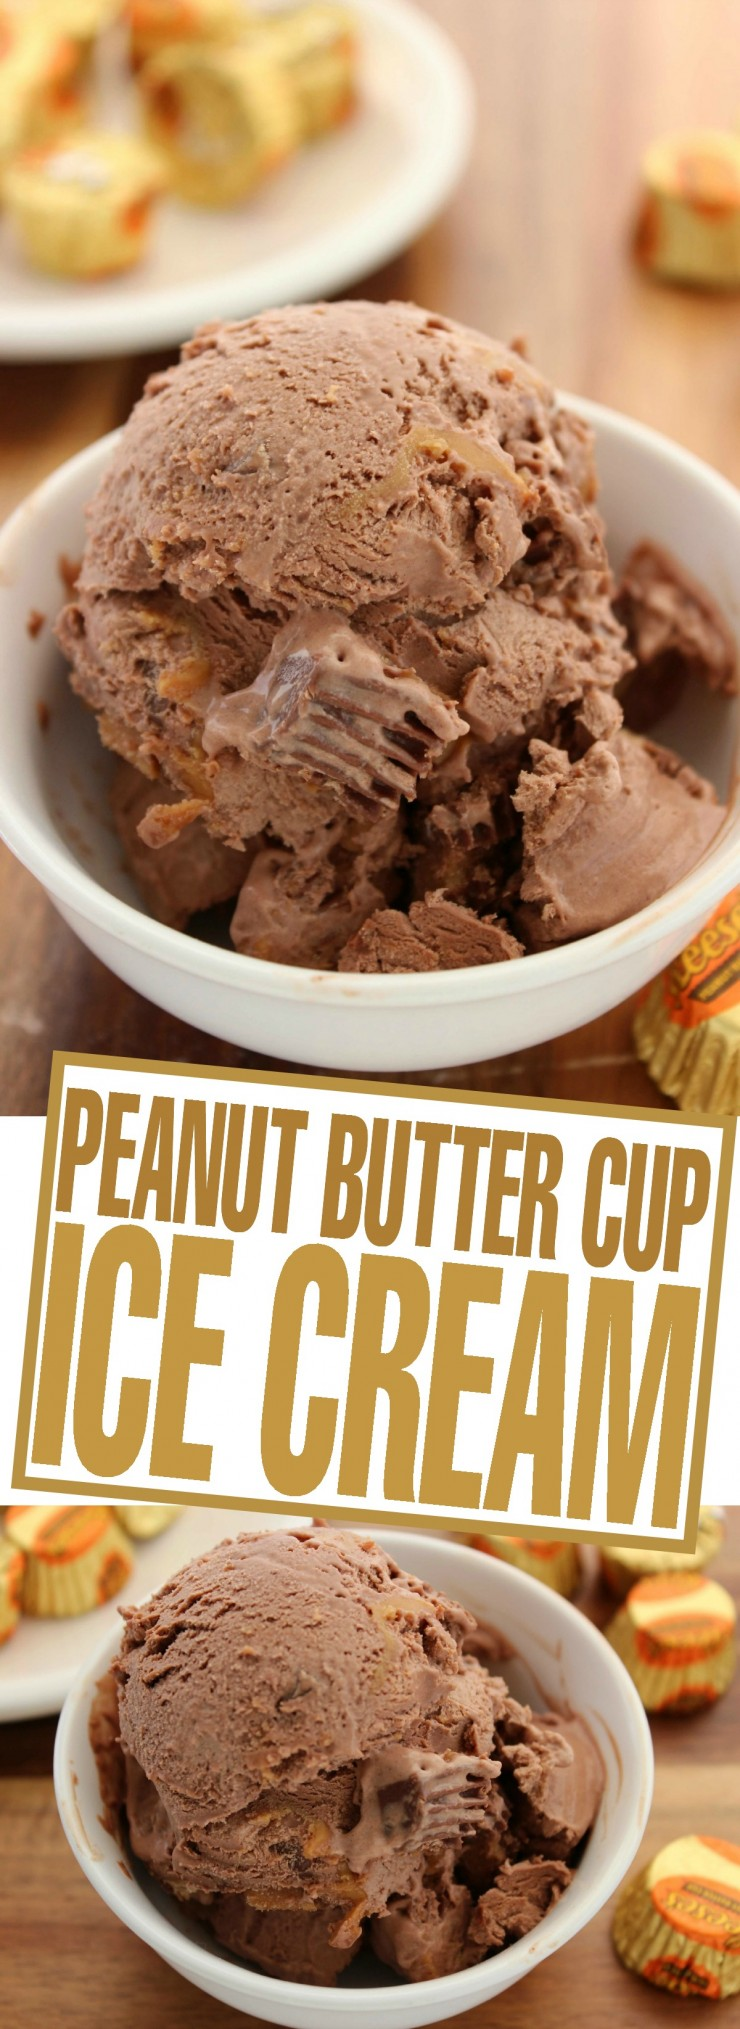 Peanut Butter Cup Ice Cream Recipe — Dishmaps